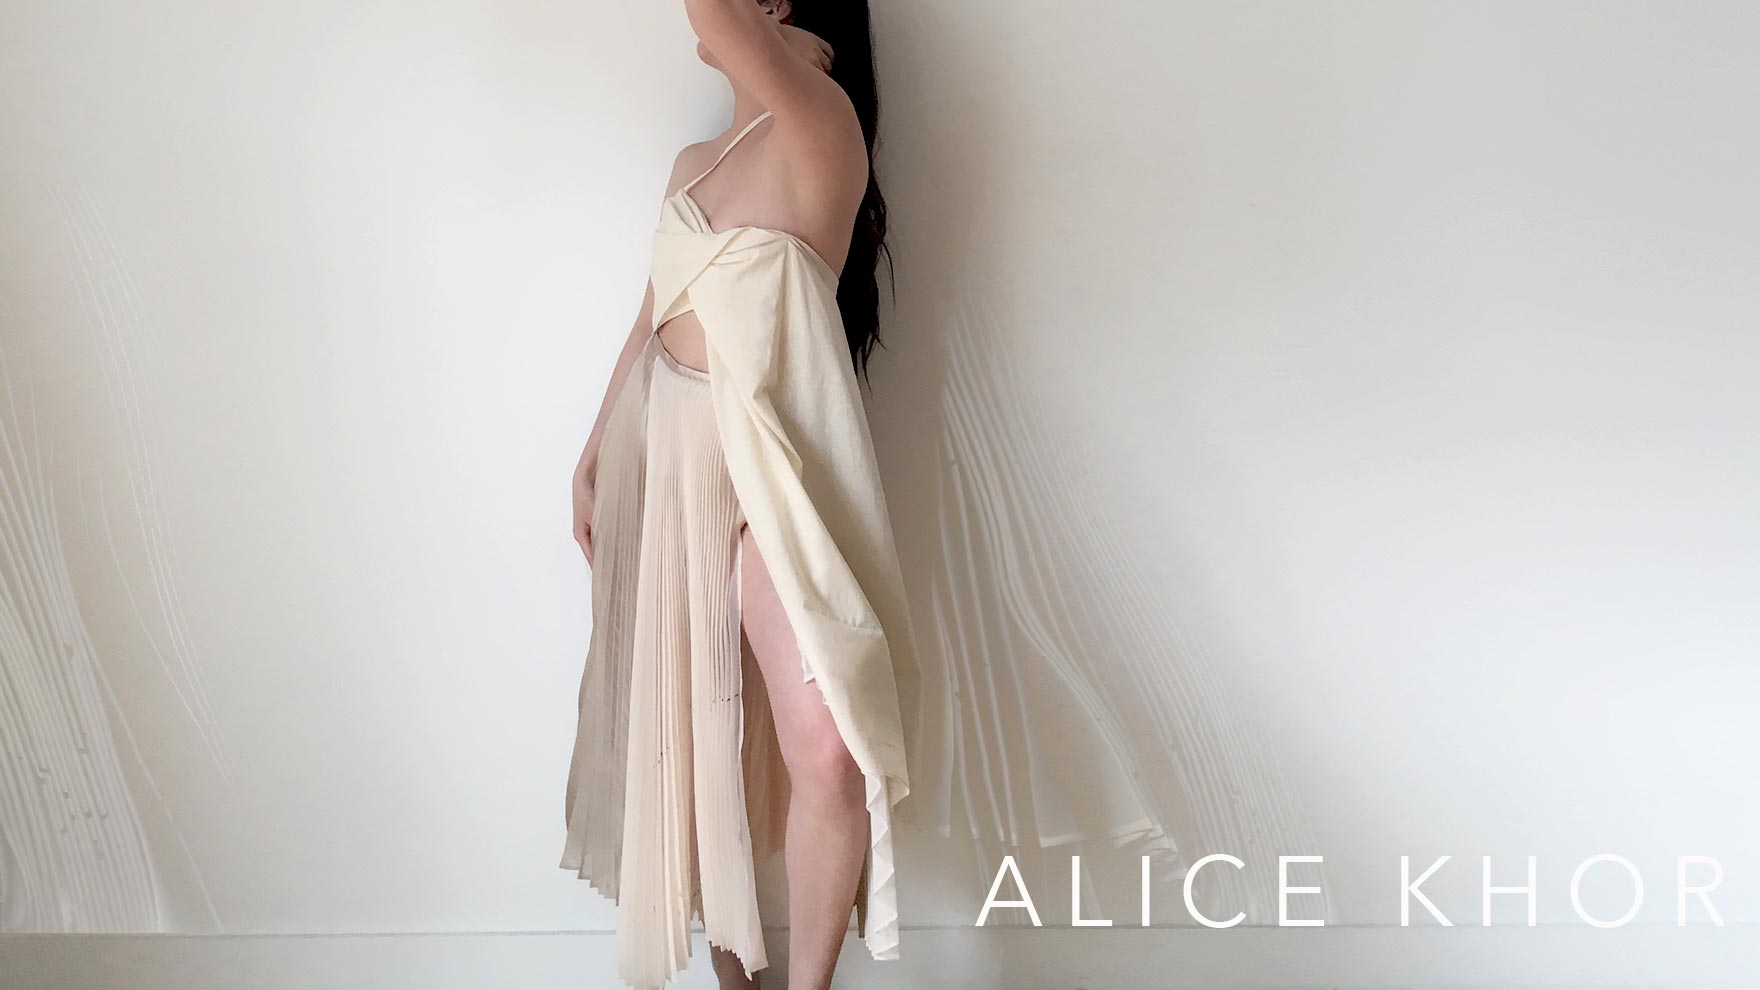 Alice Khor London College Of Fashion 2020